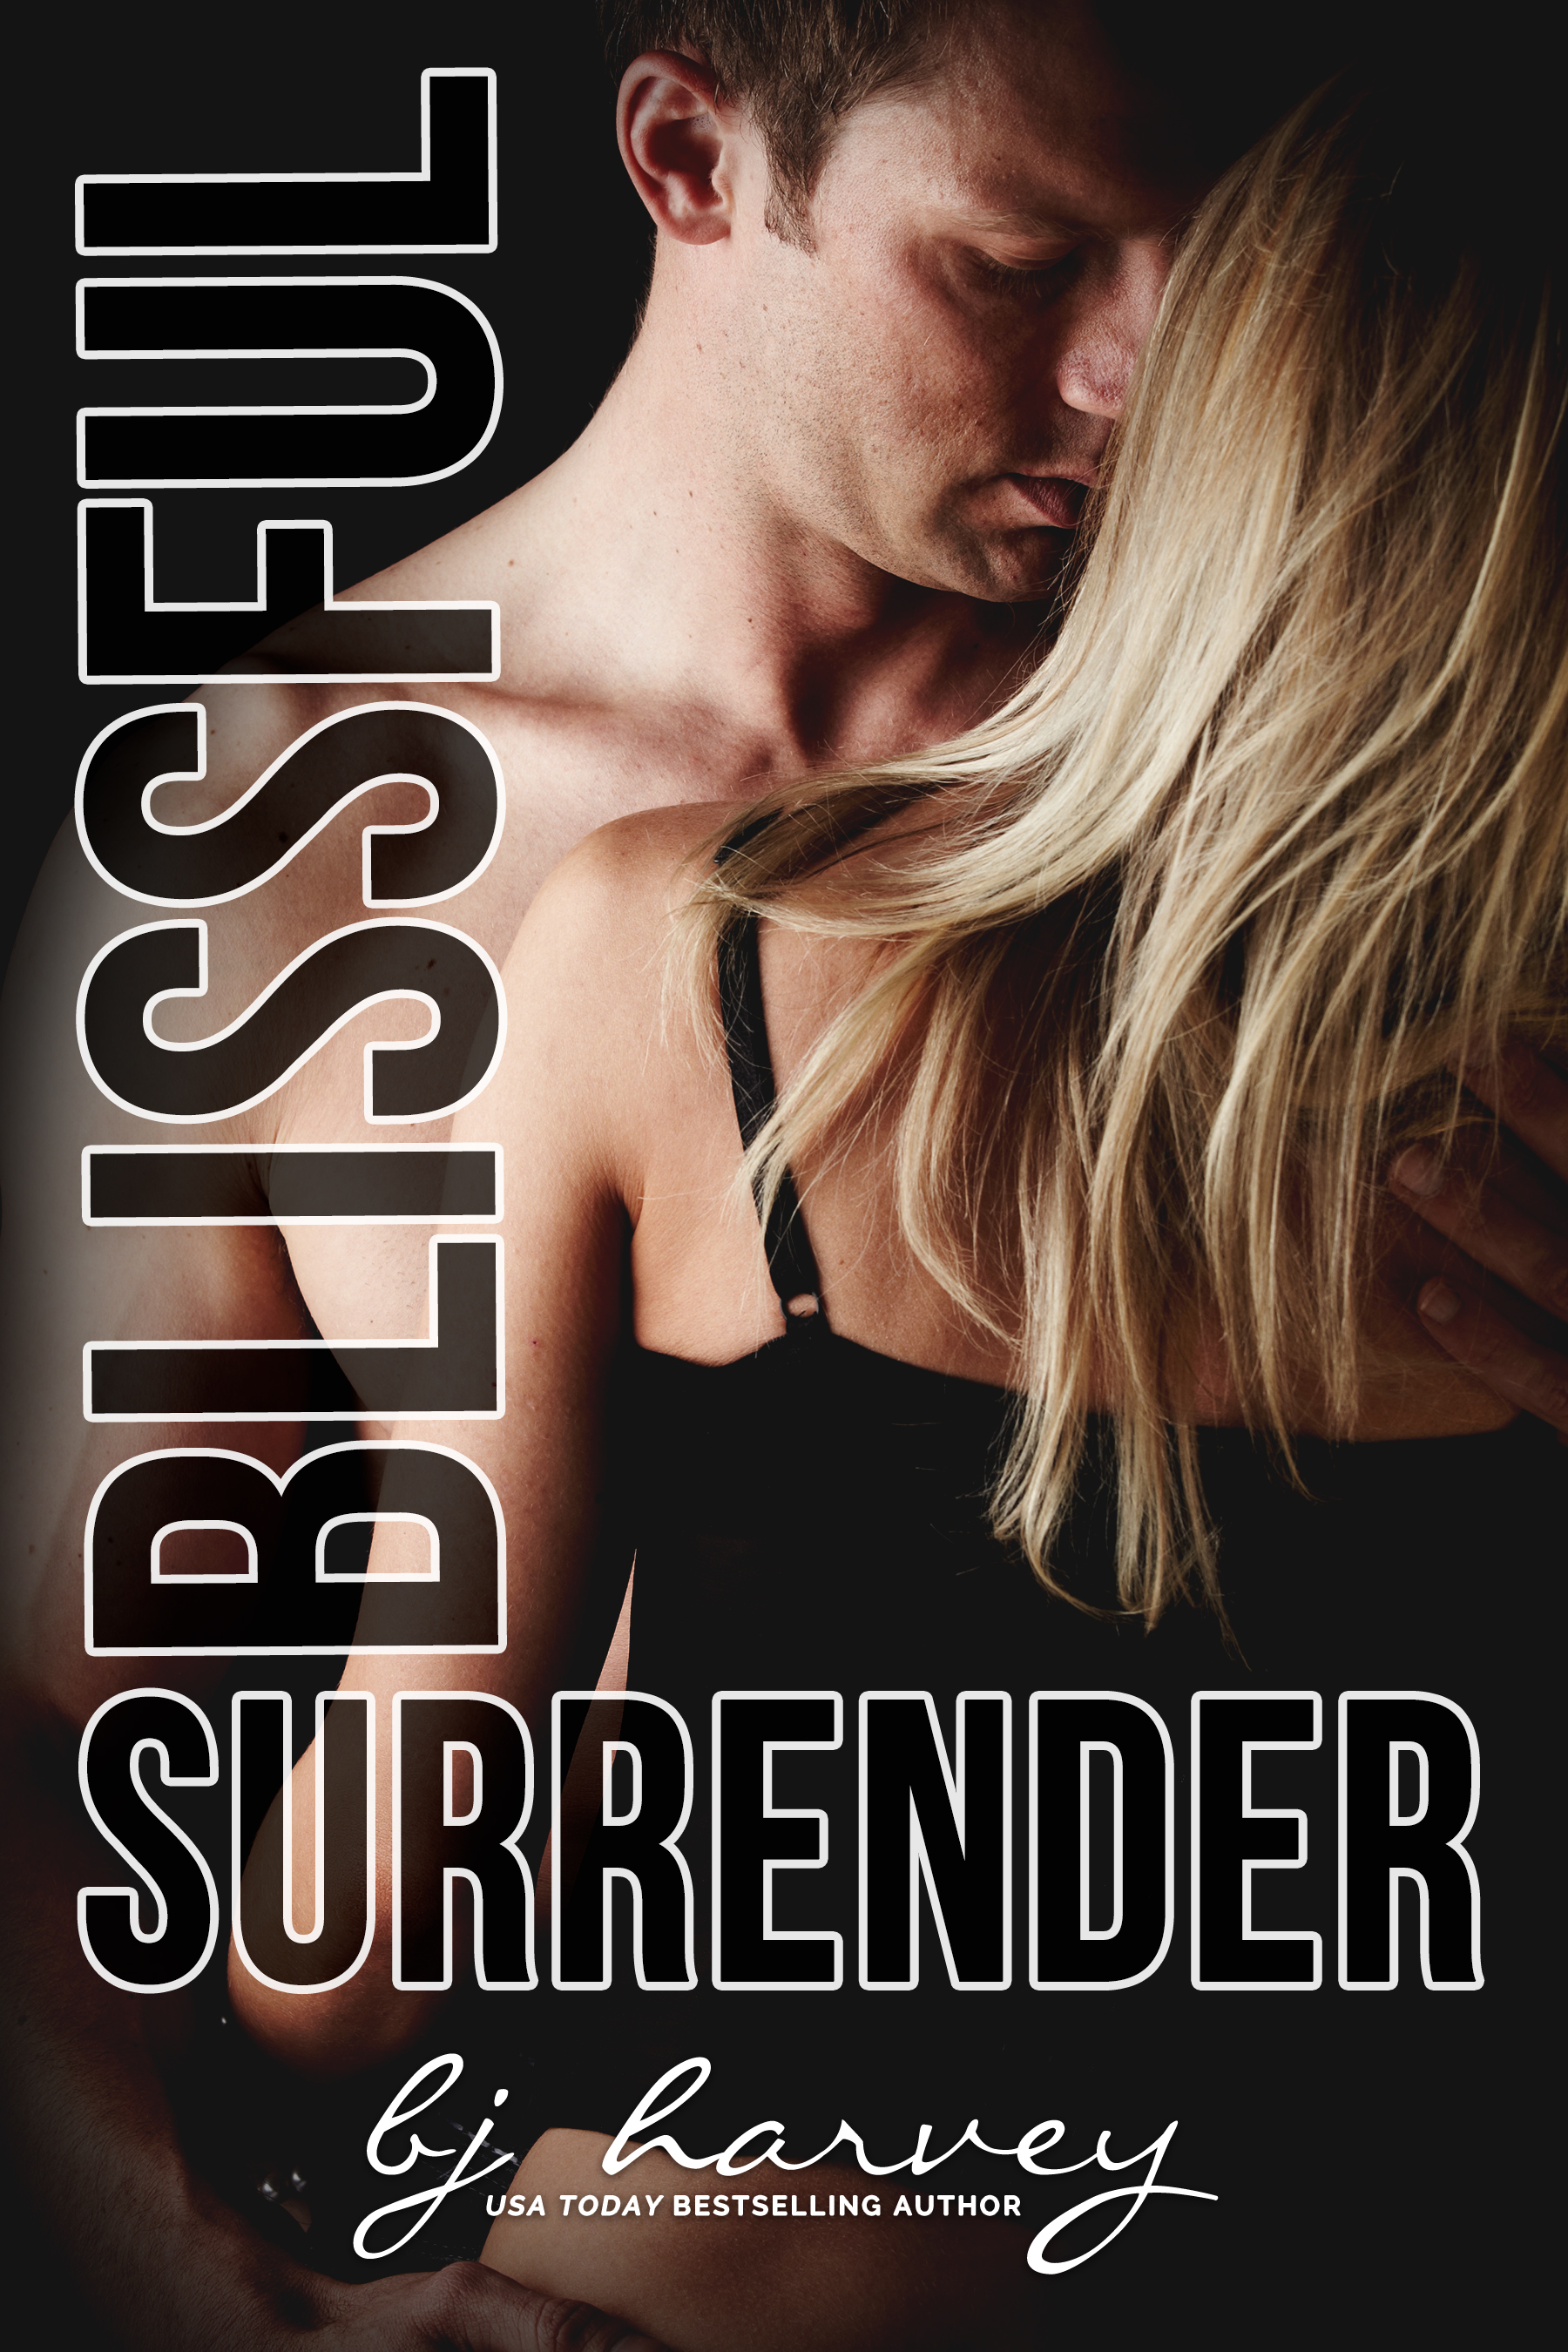 BlissfulSurrender_Ebook